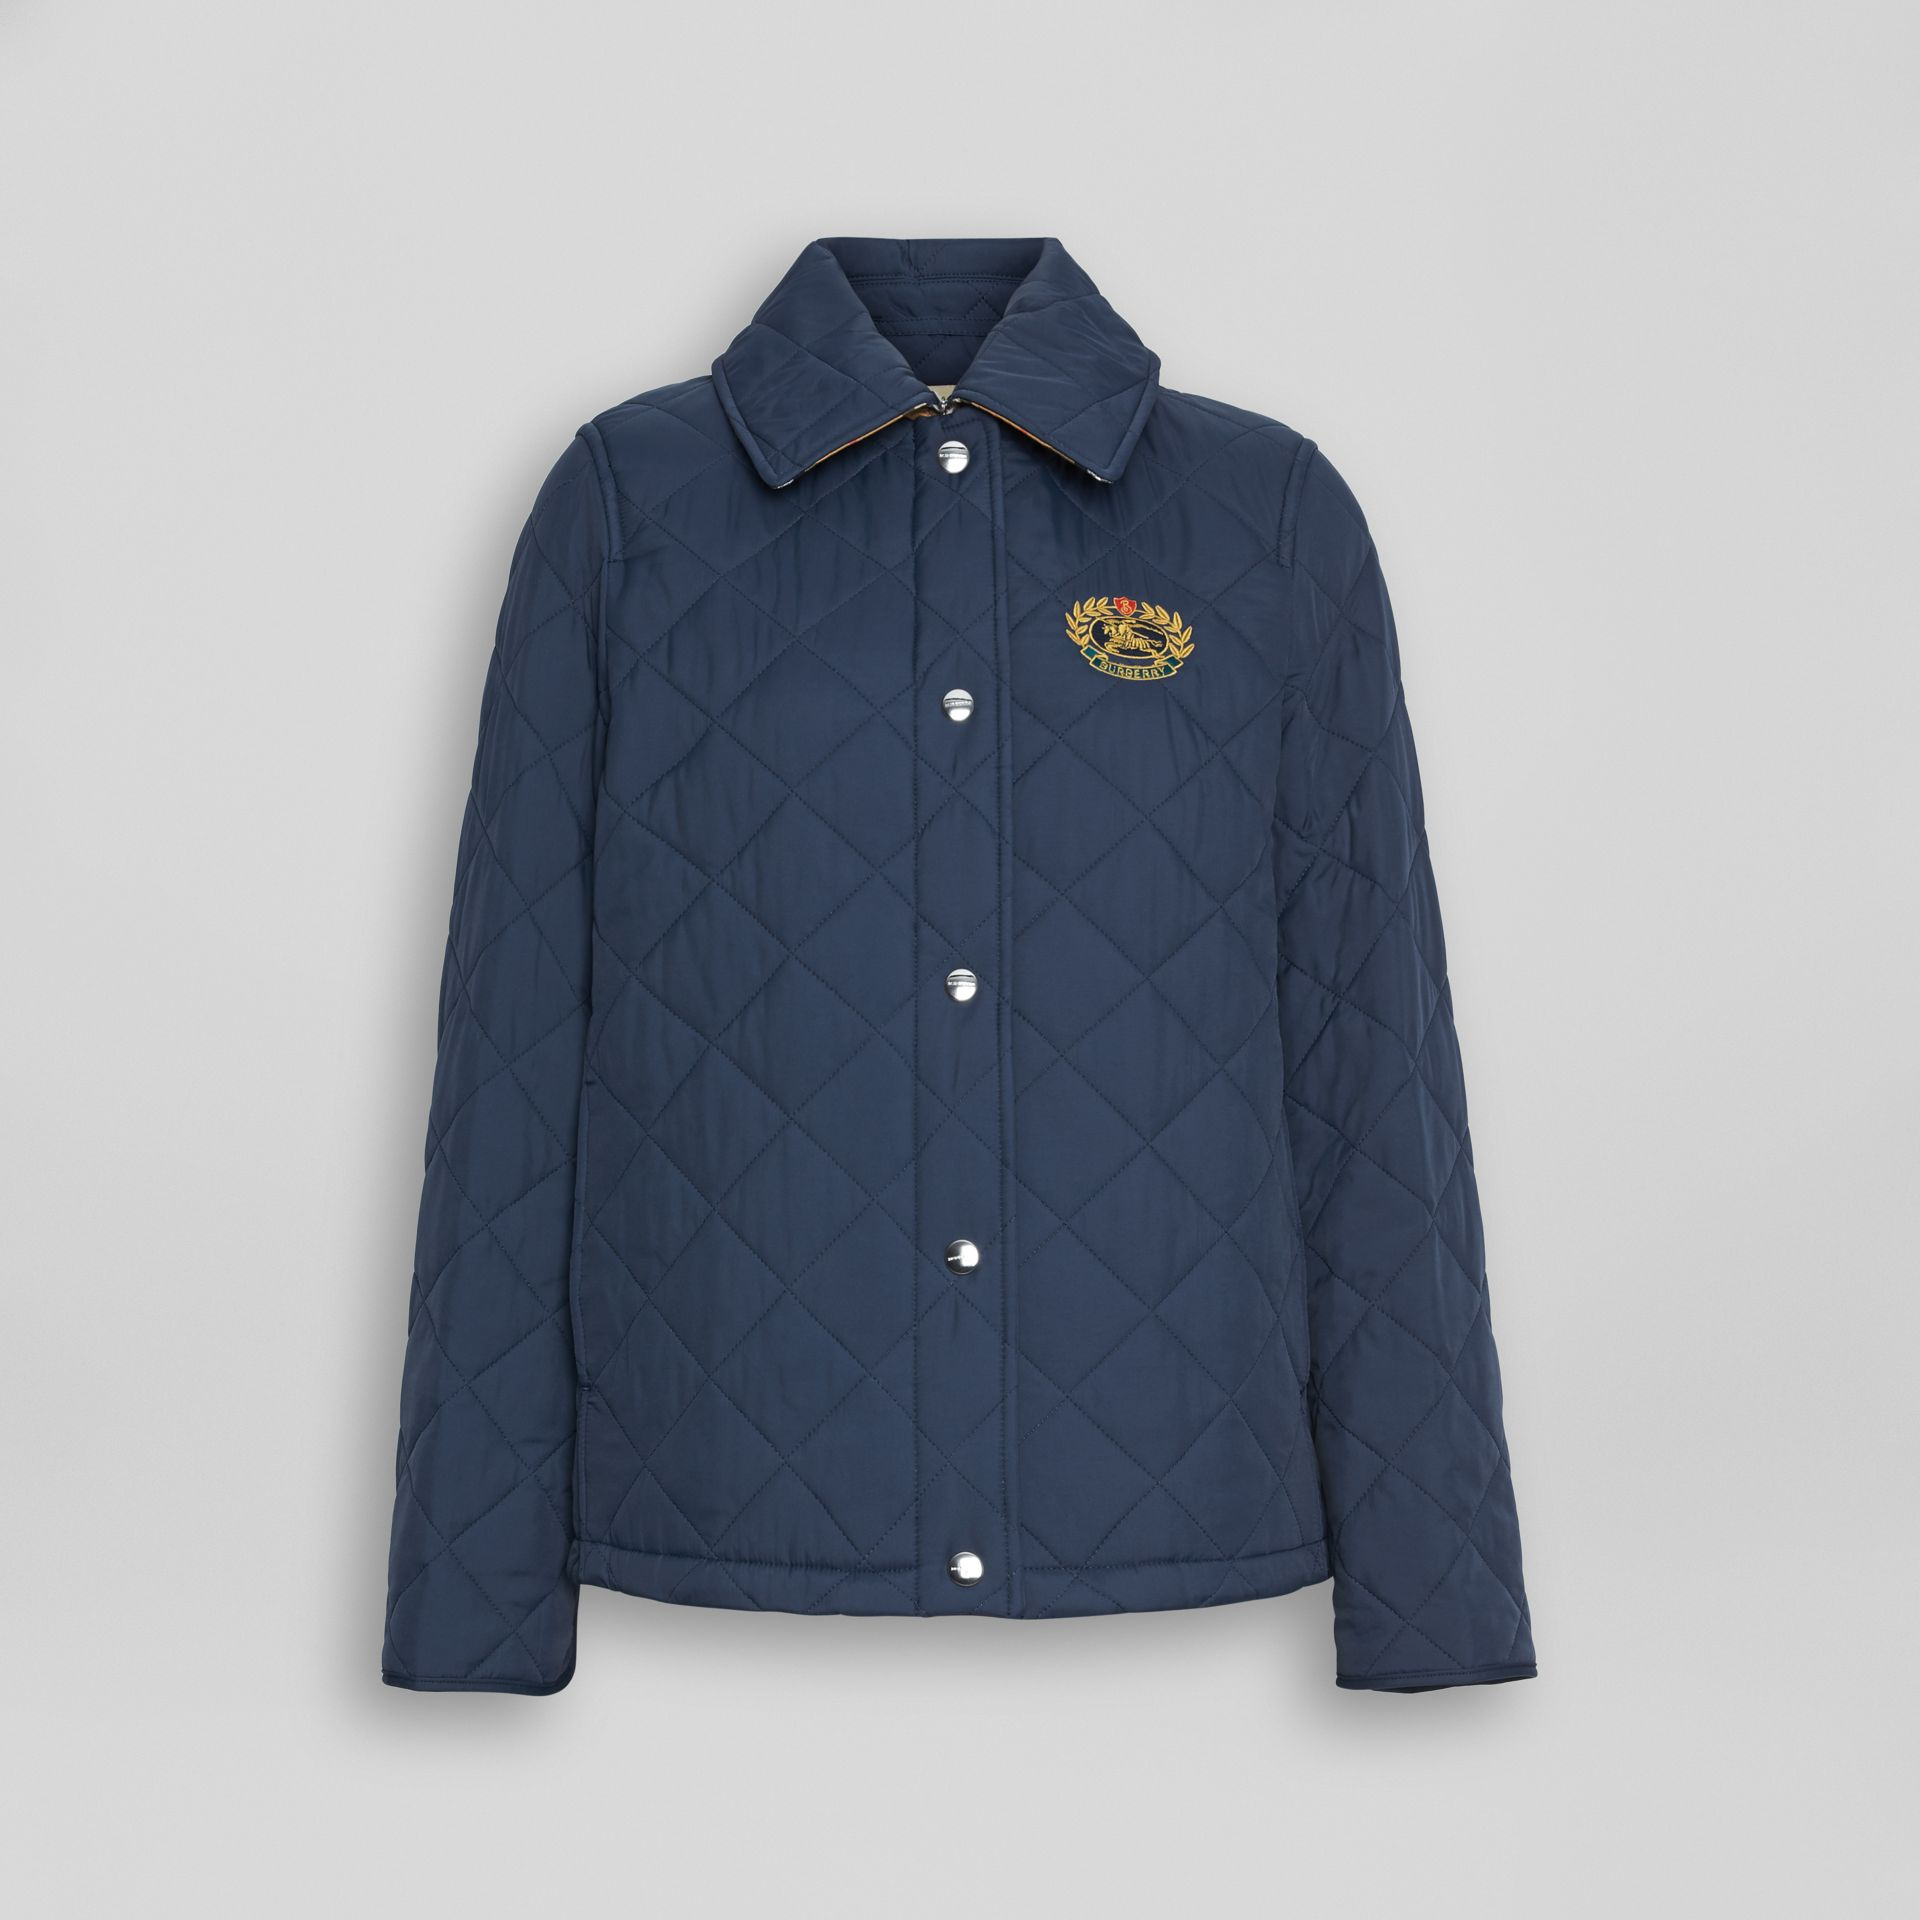 Embroidered Crest Diamond Quilted Jacket in Navy - Women | Burberry United Kingdom - gallery image 3